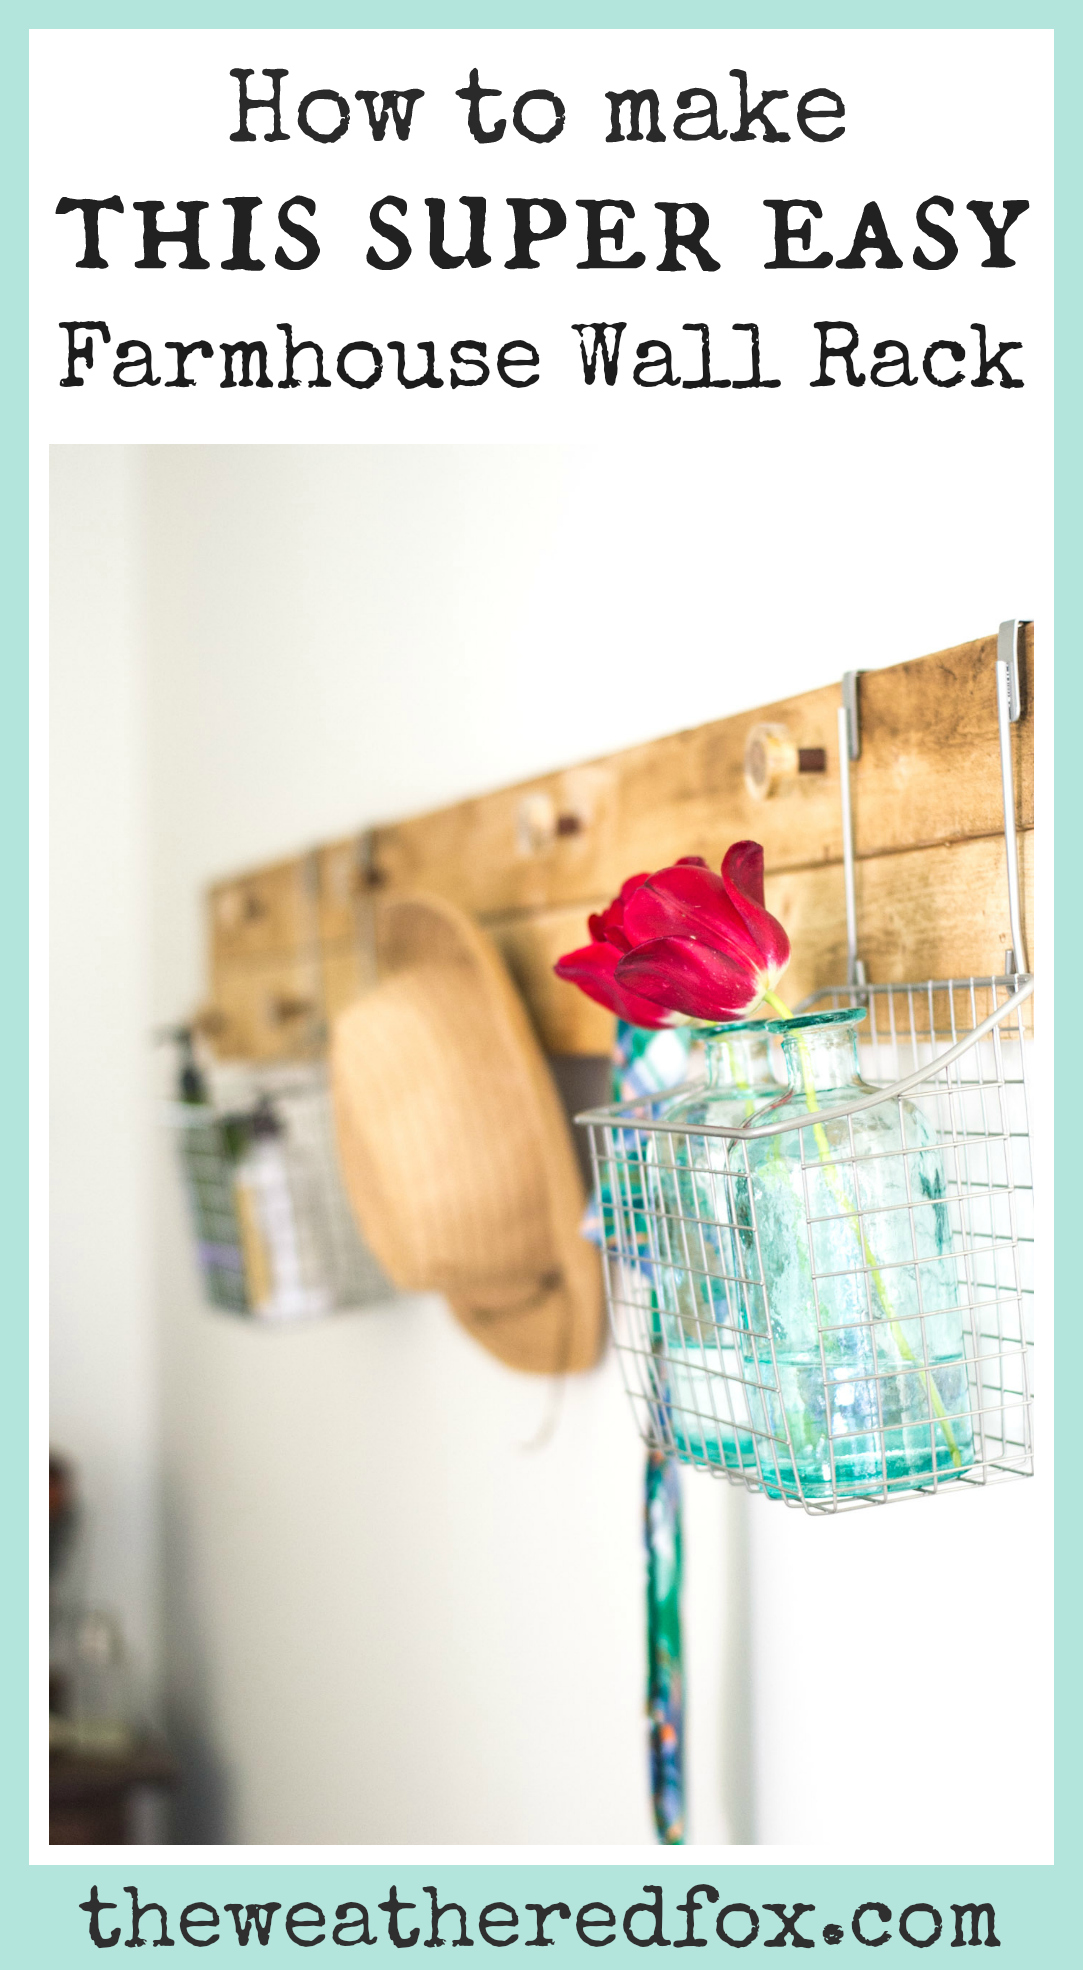 Farmhouse Wall Rack DIY. Make this super easy rustic wall rack and keep your home organized! How to keep your bedroom clean